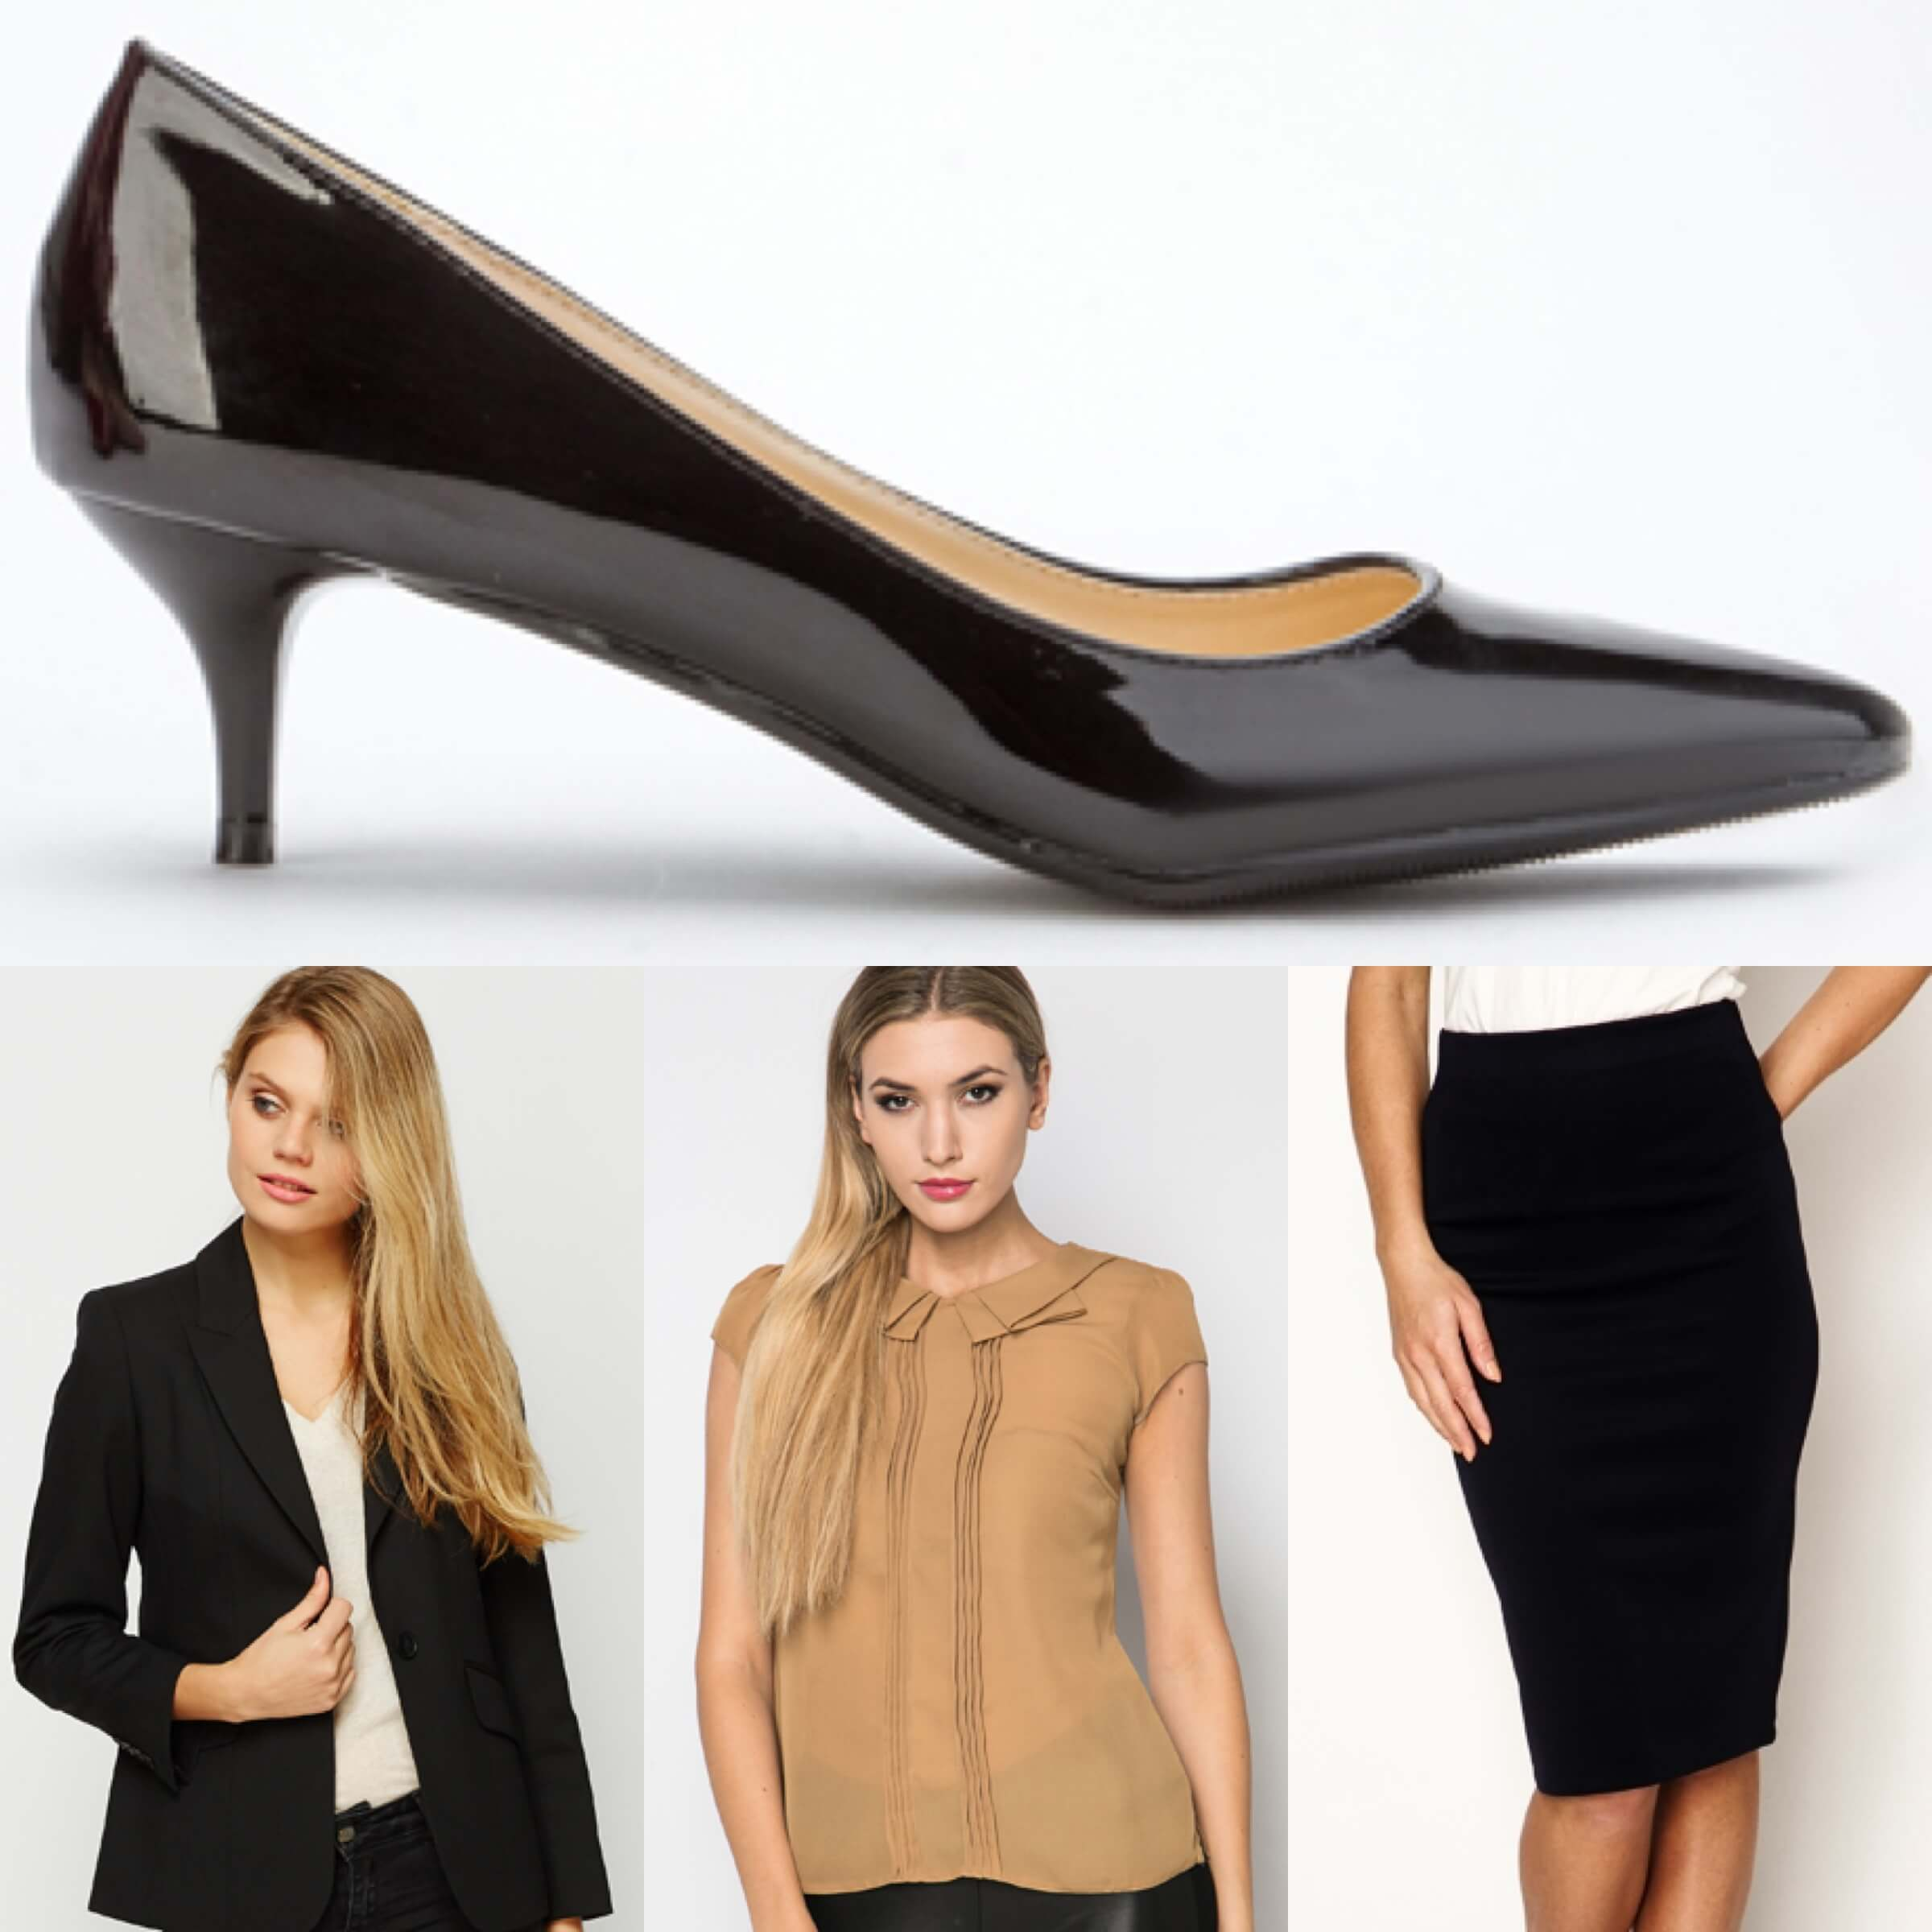 5 Ways to Dress for a Job Interview - legal and finance jobs